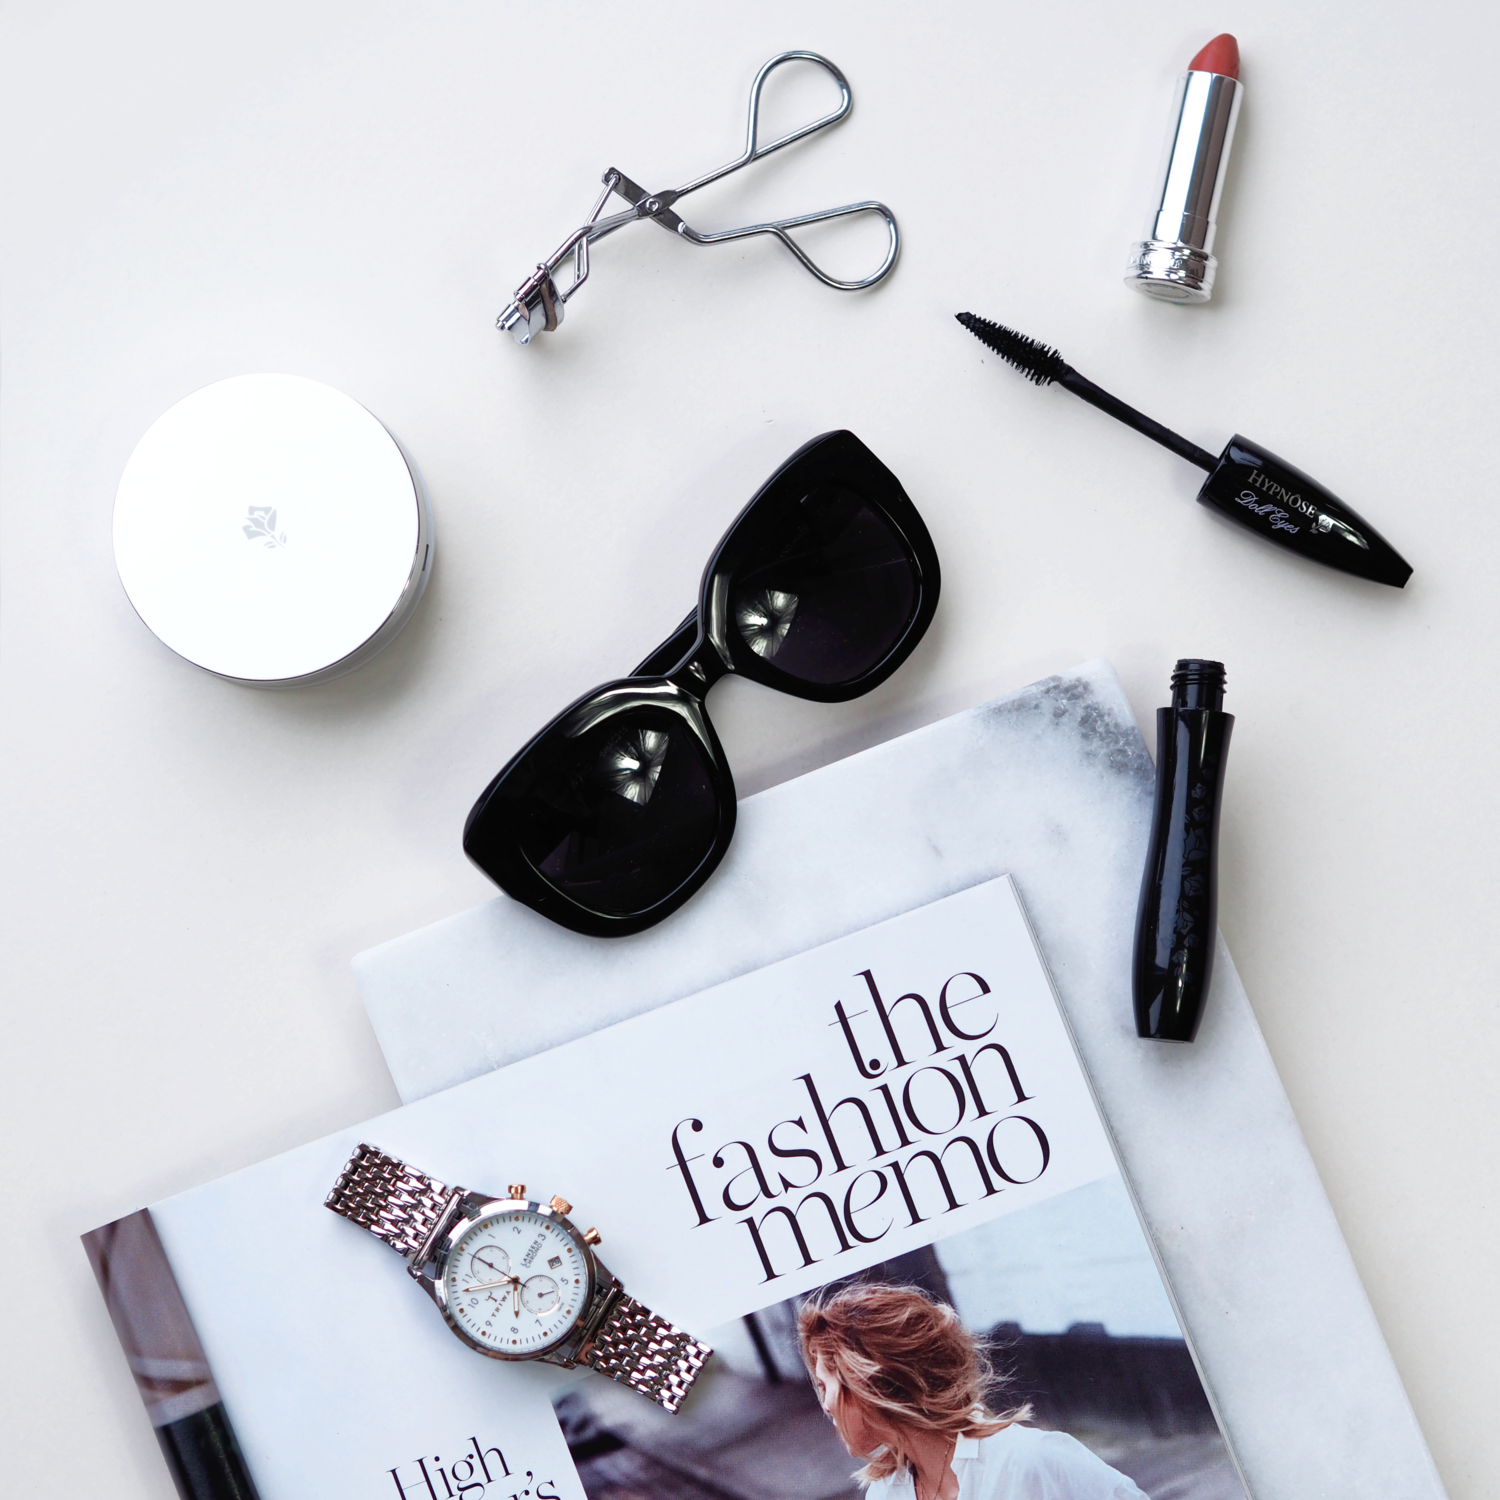 WHATS IN MY HANDBAG, HANDBAG ESSENTIALS, BEAUTY, TRIWA WATCH, LANCOME, LAURA BLAIR, LONDON FASHION GIRL